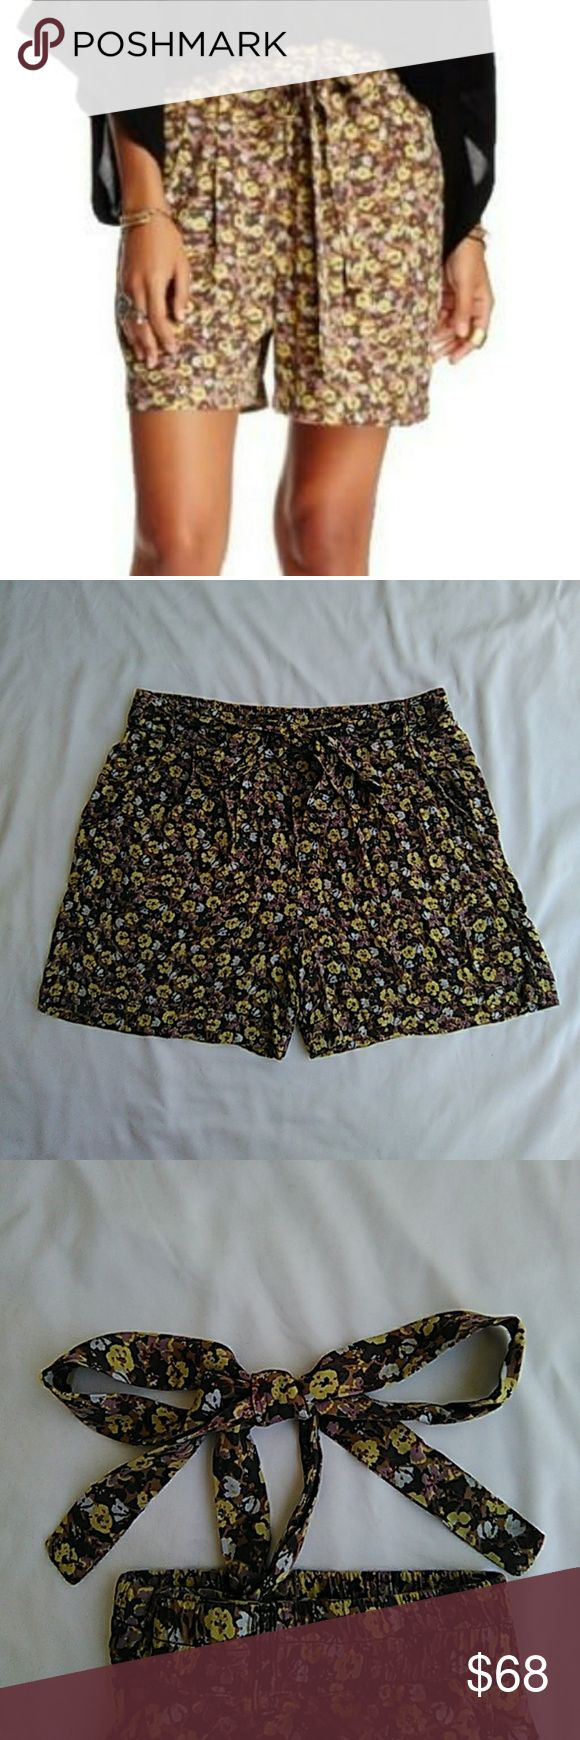 Free People multicolored floral shorts size small Free People multicolored floral shorts size small. Loose fitting with elastic waist and front tie belt. Front and back pockets. EUC. Waist laying flat 14.5, length on outside 16 thigh width 11.5 laying flat.  Would look cute with a cream or white blouse and sandals. Bundle or like your items for free shipping over $50.   Inv#KF002 a.c. Free People Shorts